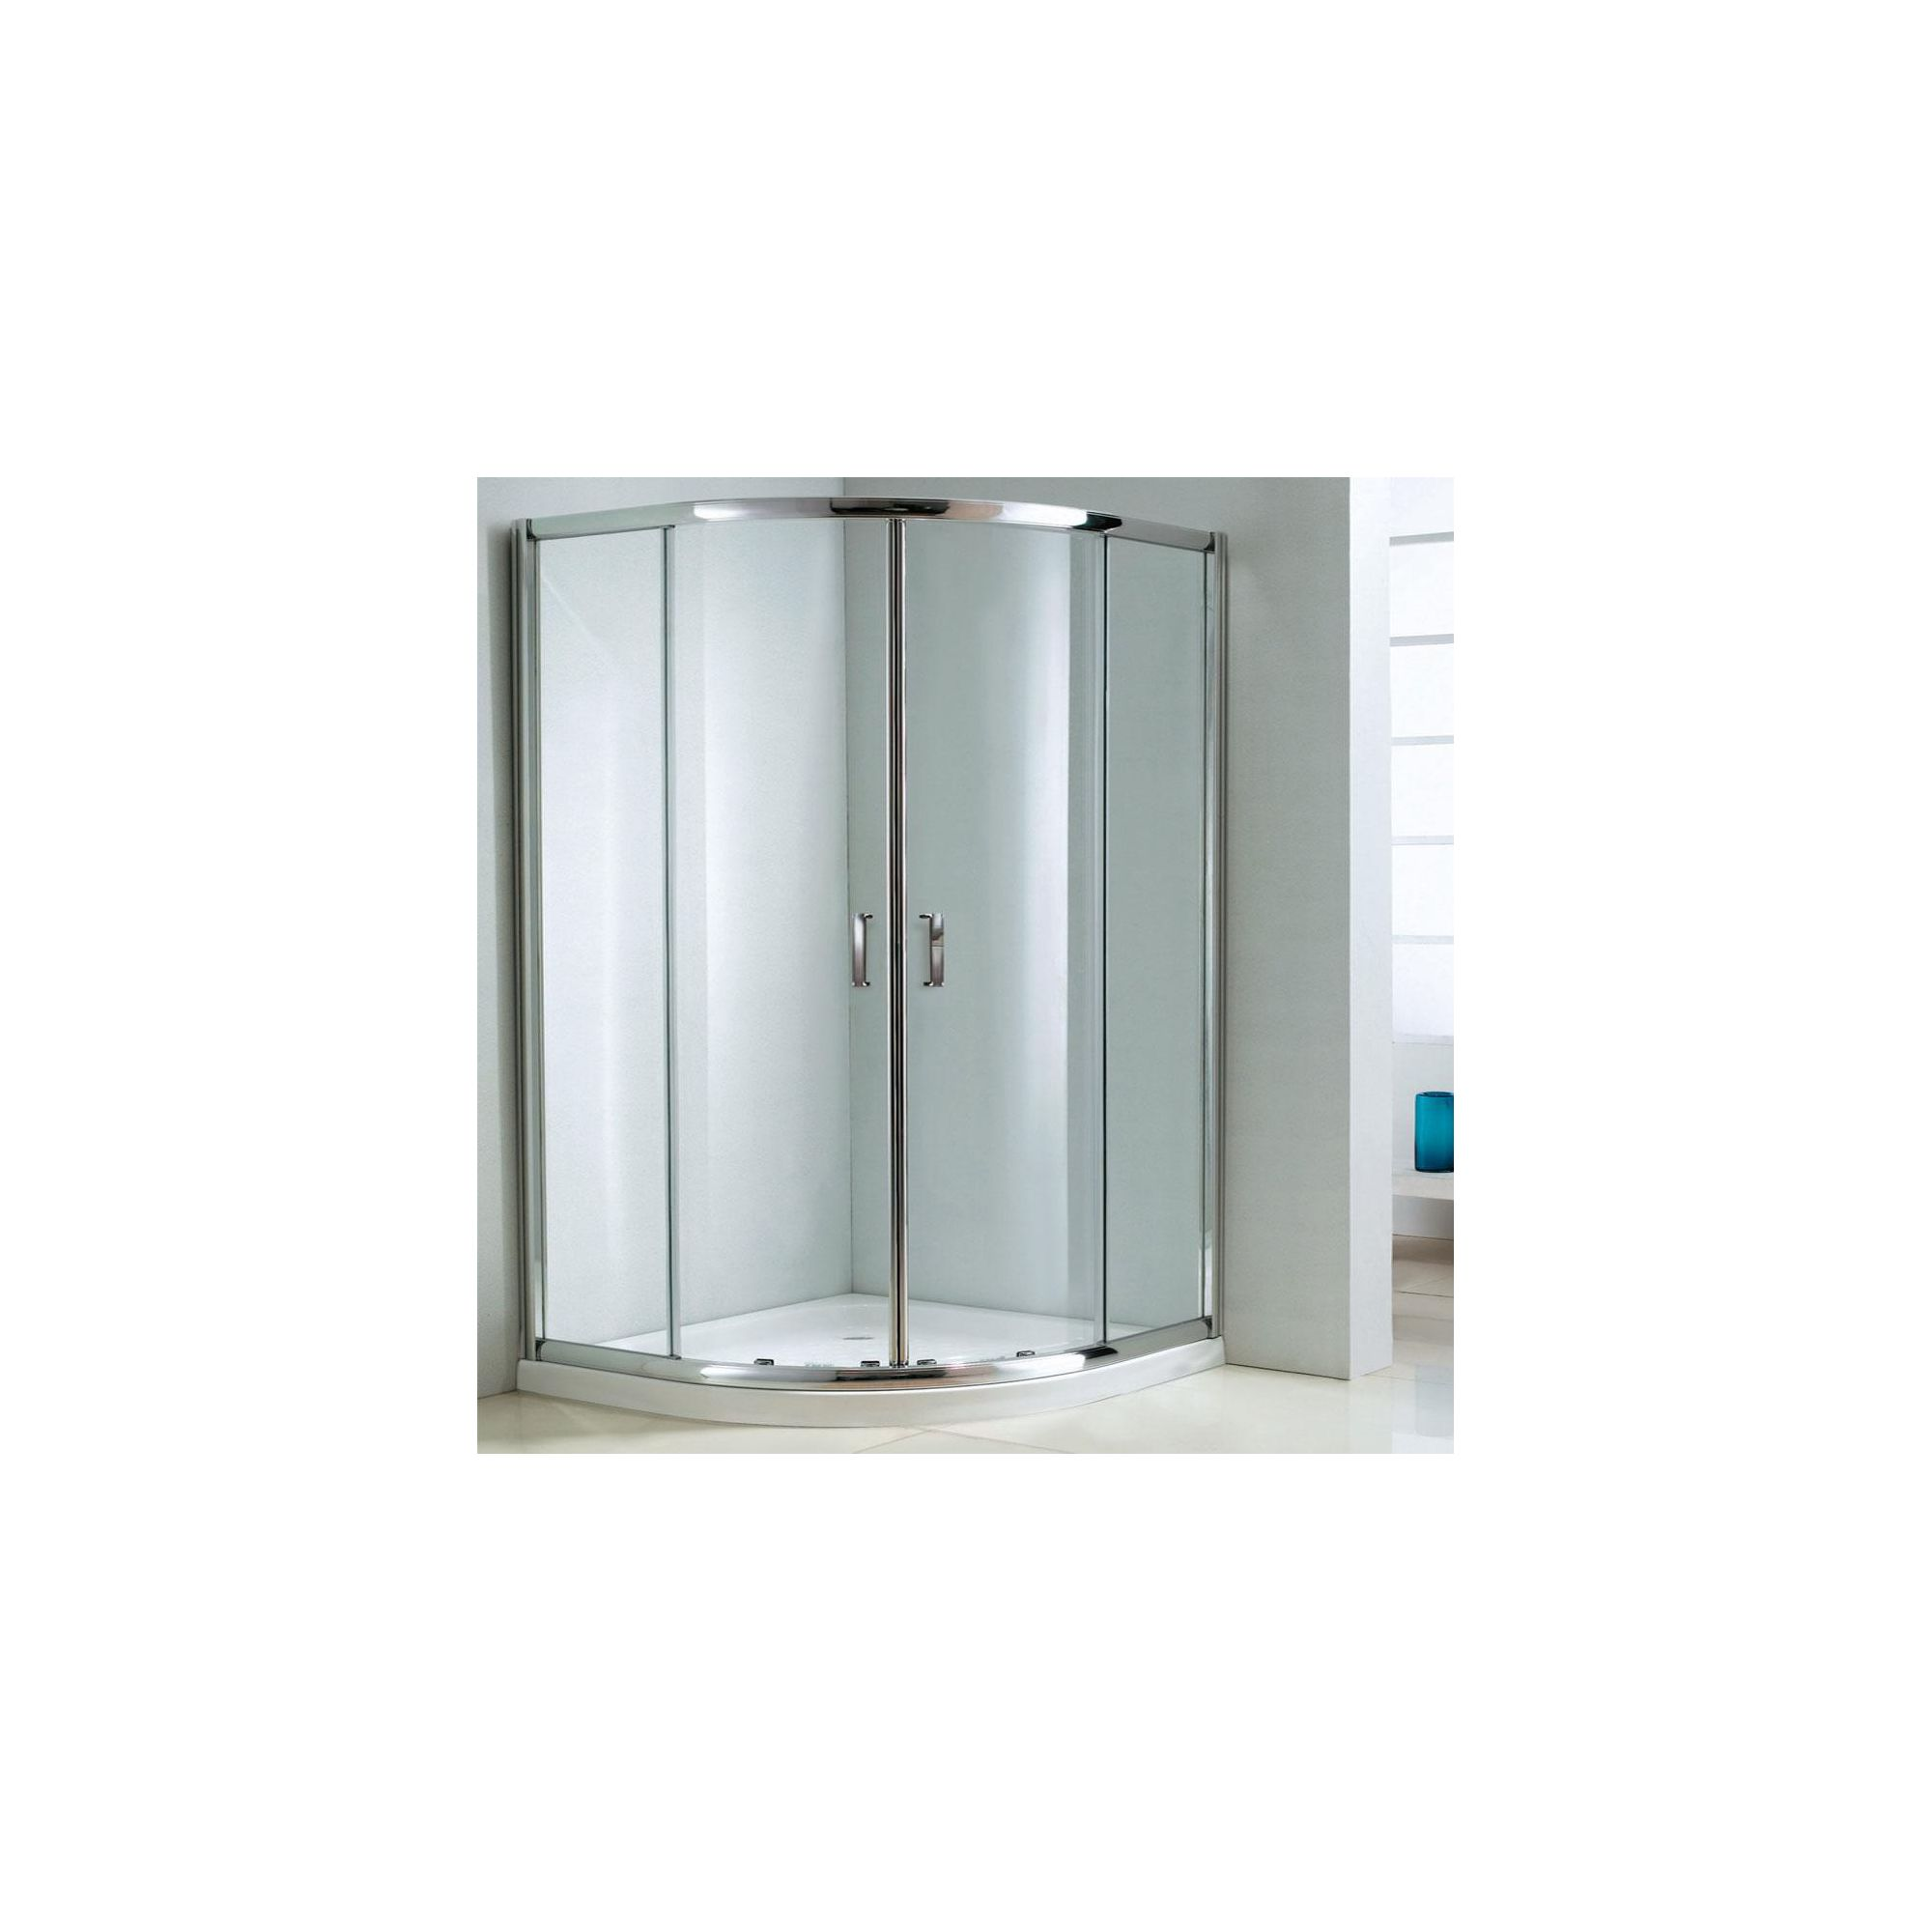 Duchy Style Double Offset Quadrant Door Shower Enclosure, 1200mm x 900mm, 6mm Glass, Low Profile Tray, Right Handed at Tesco Direct